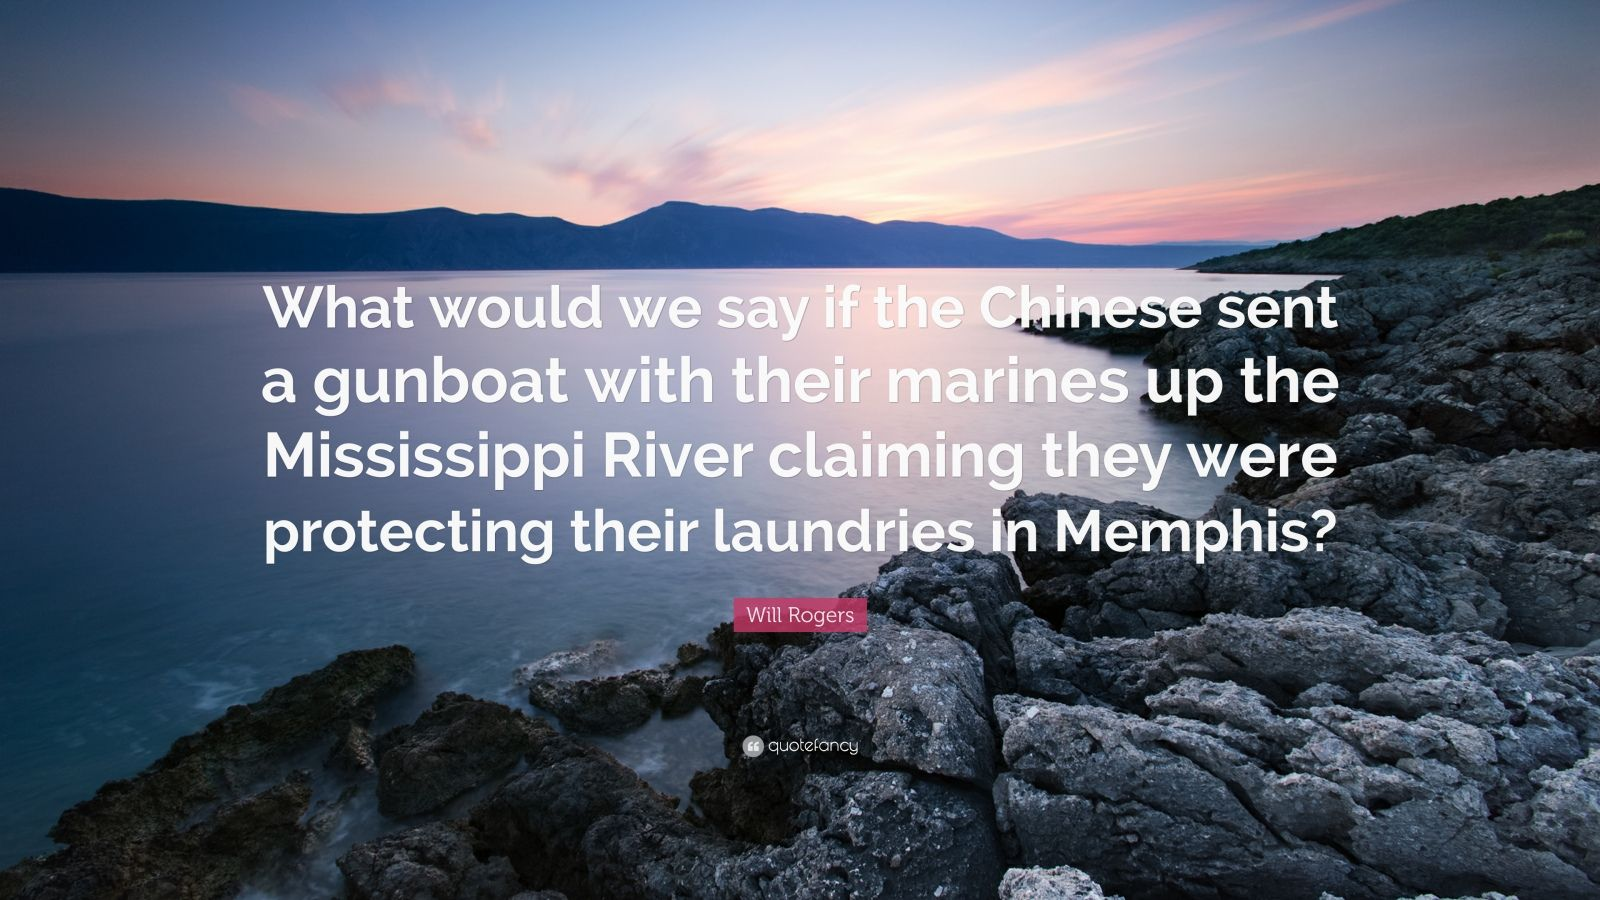 """Will Rogers Quote: """"What would we say if the Chinese sent a gunboat with their marines up the Mississippi River claiming they were protecting their laundries in Memphis?"""""""